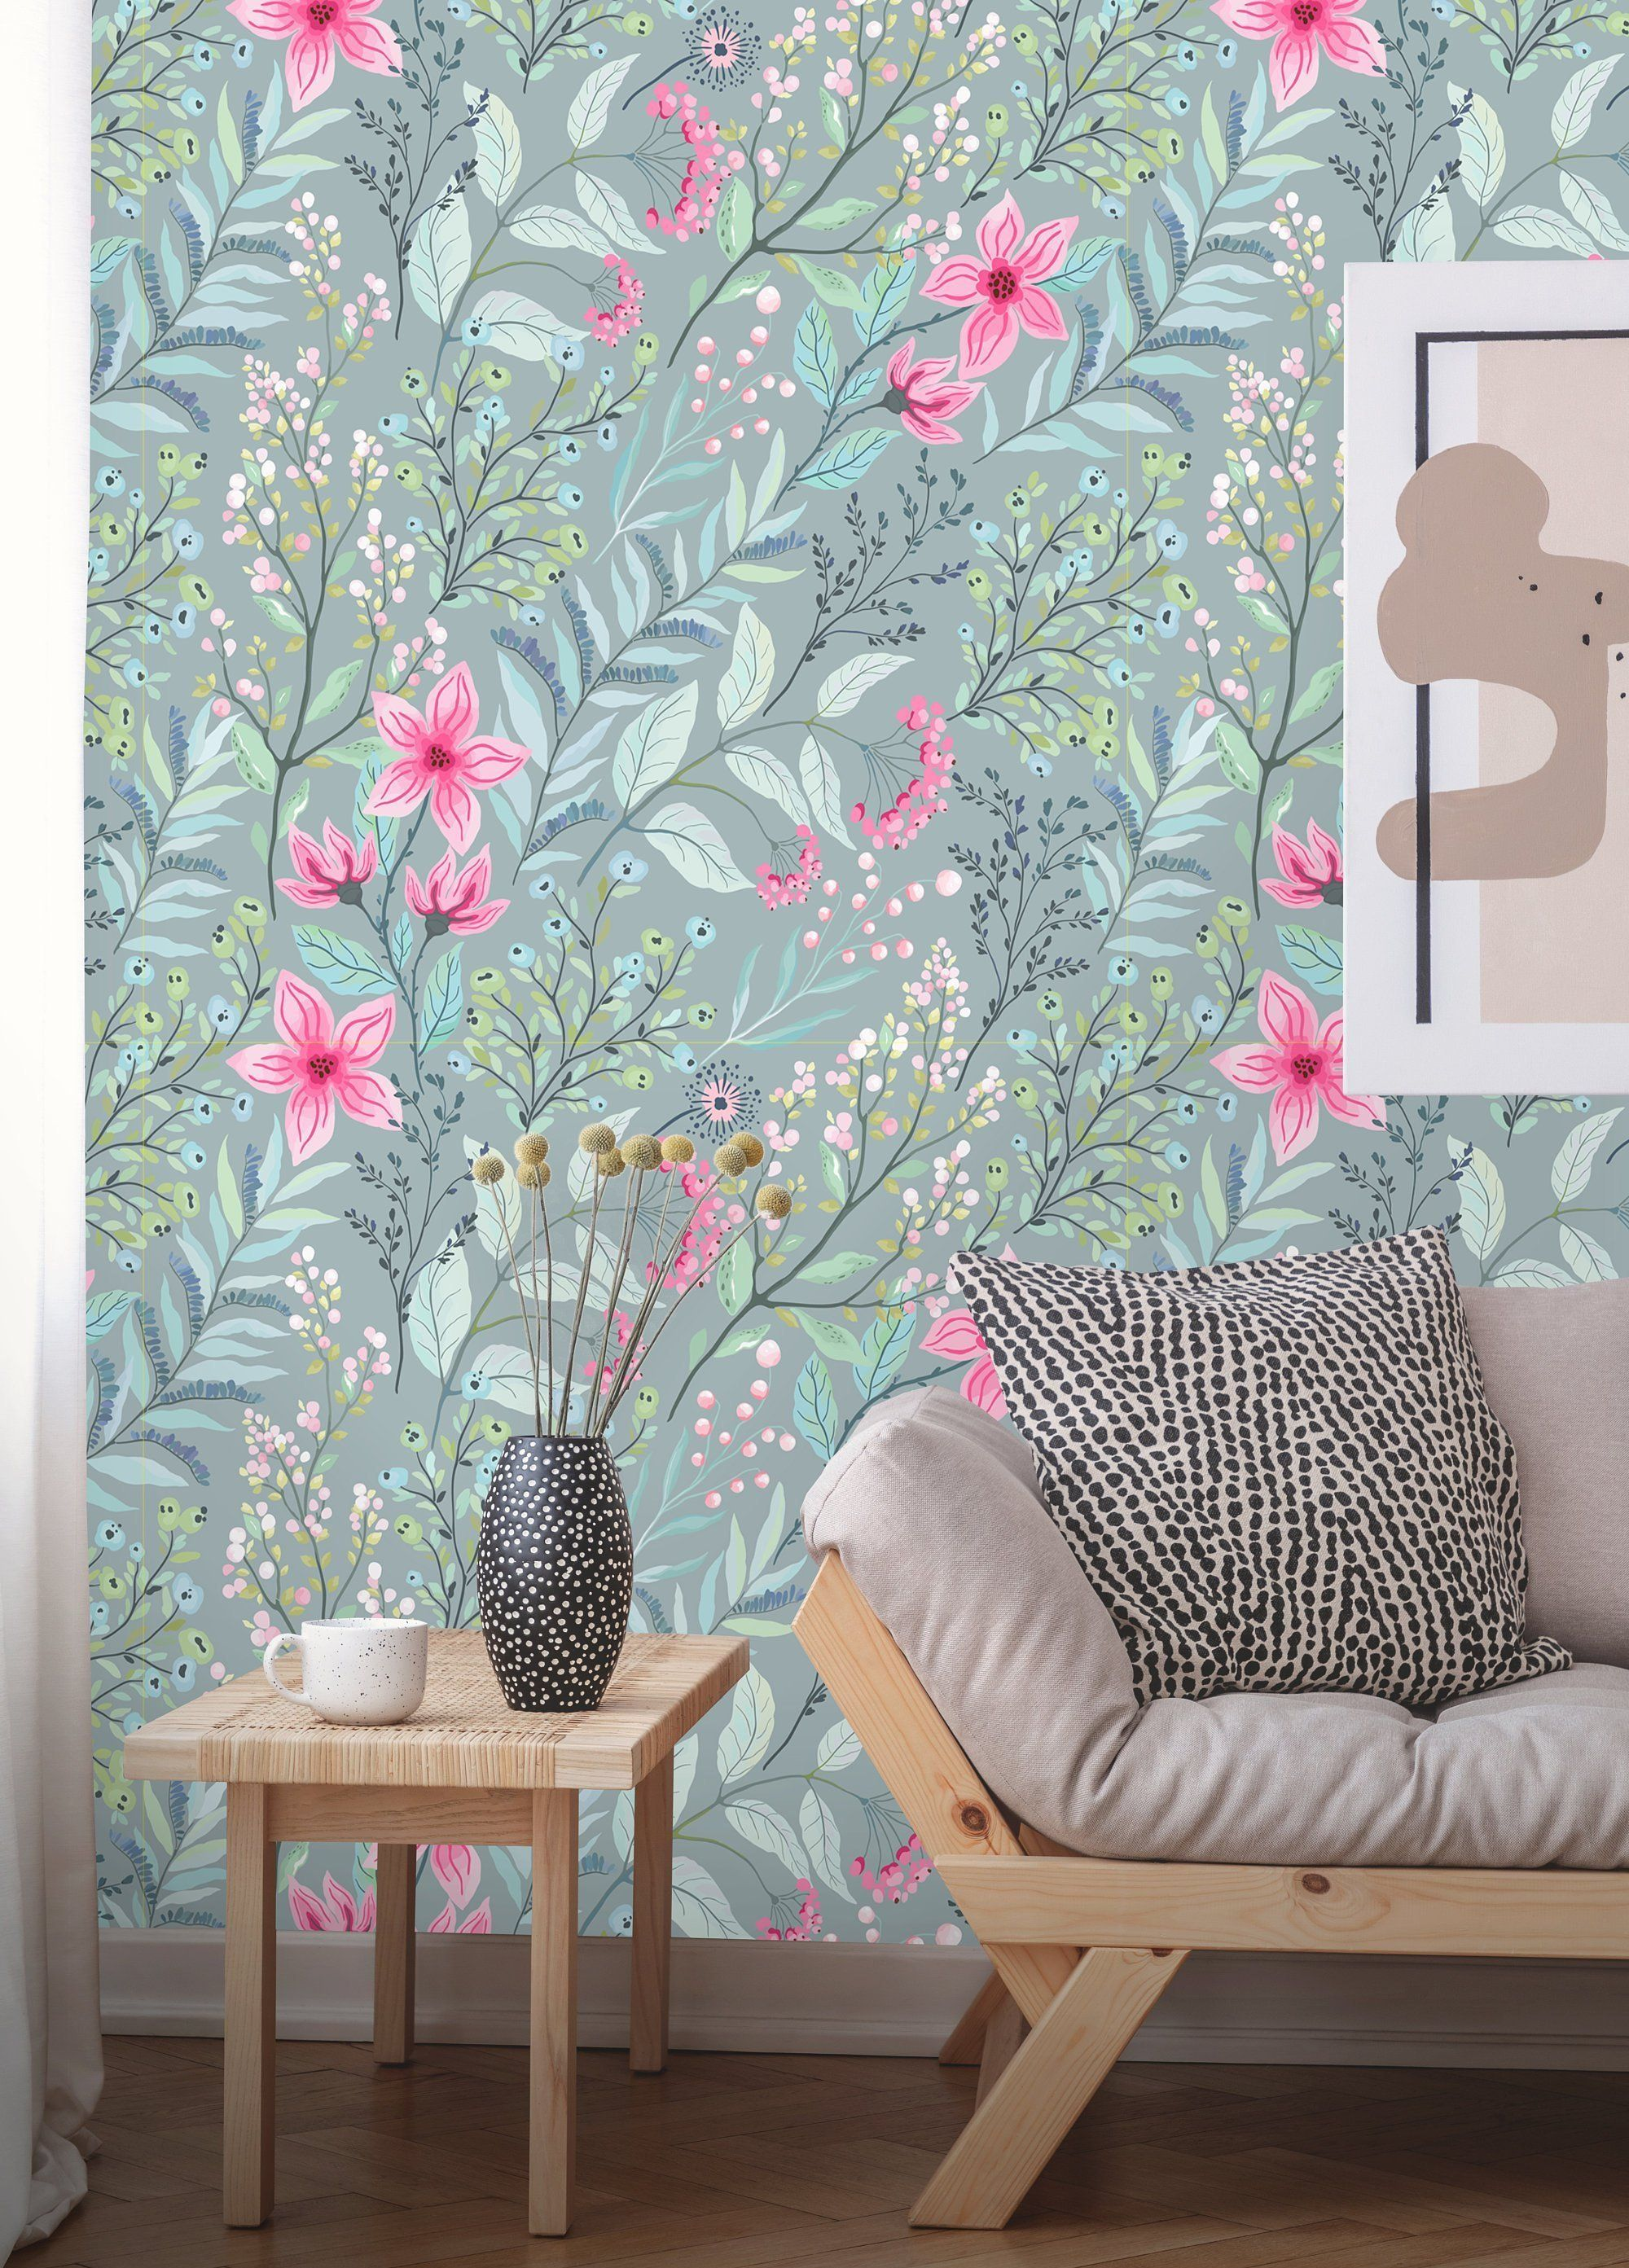 Removable Wallpaper Peel And Stick Floral Wallpaper Etsy Removable Wallpaper Floral Wallpaper Textured Walls